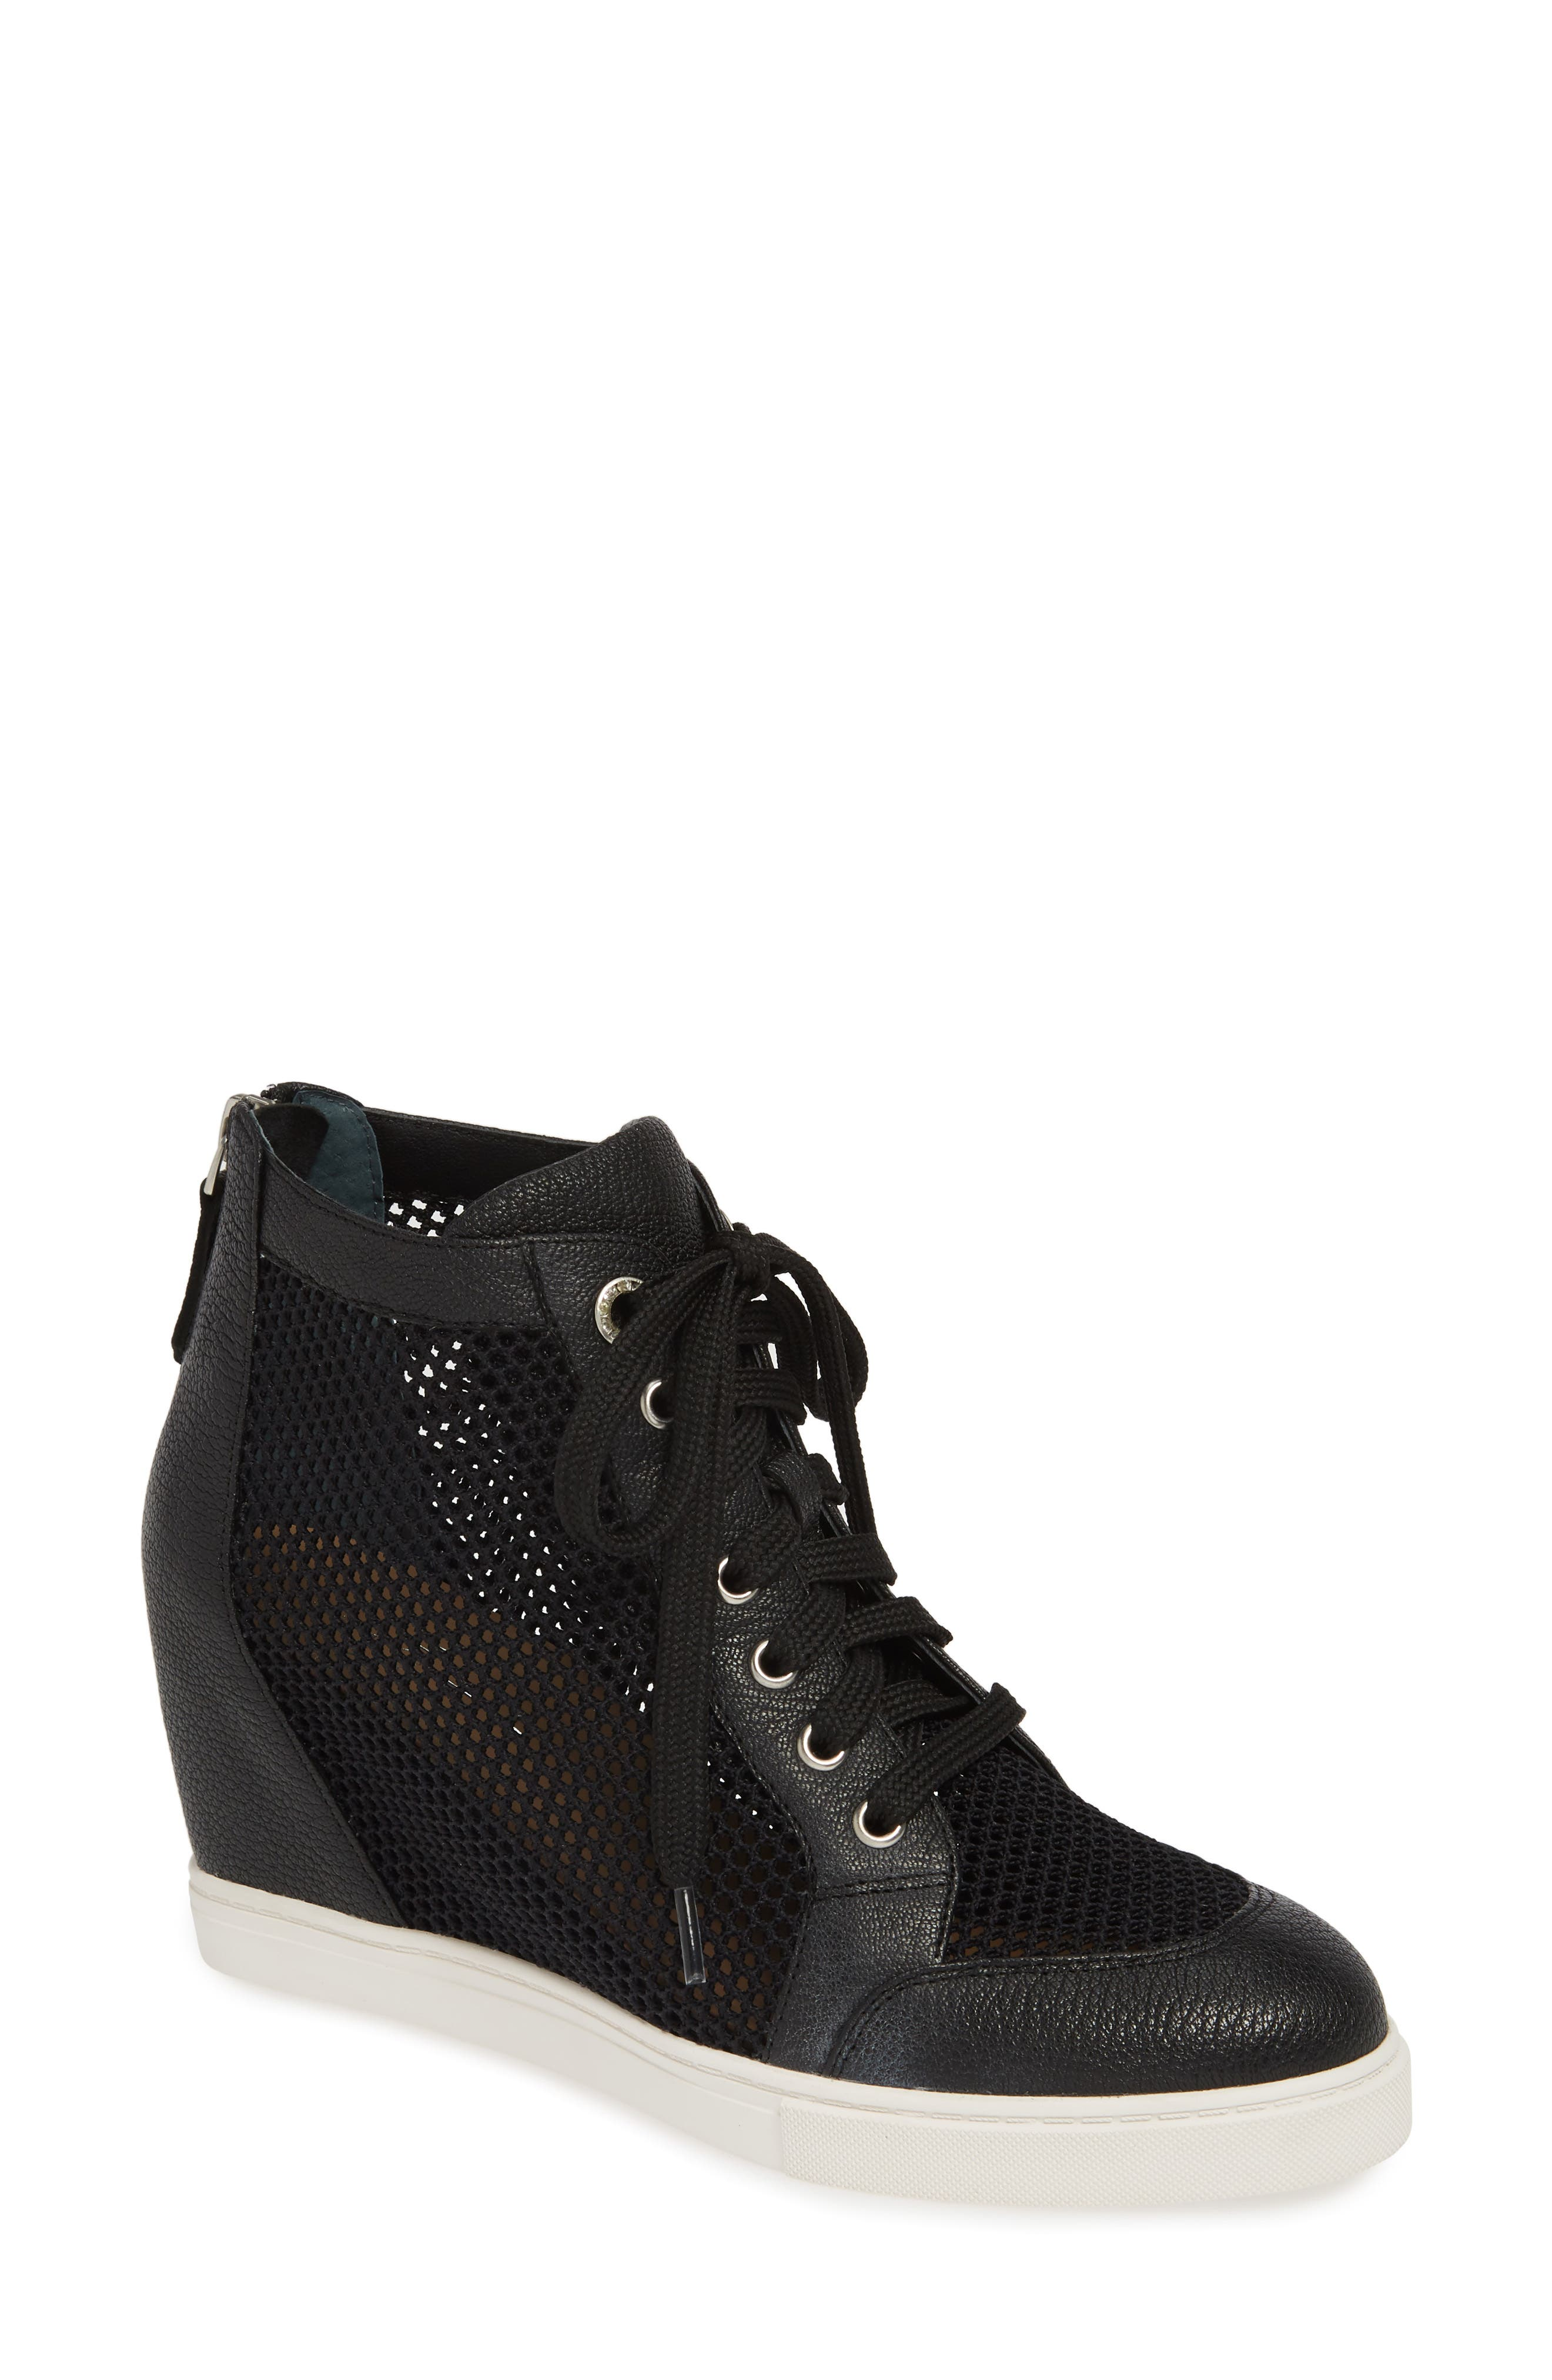 LINEA PAOLO, Finian Mesh Wedge Sneaker Bootie, Main thumbnail 1, color, BLACK LEATHER